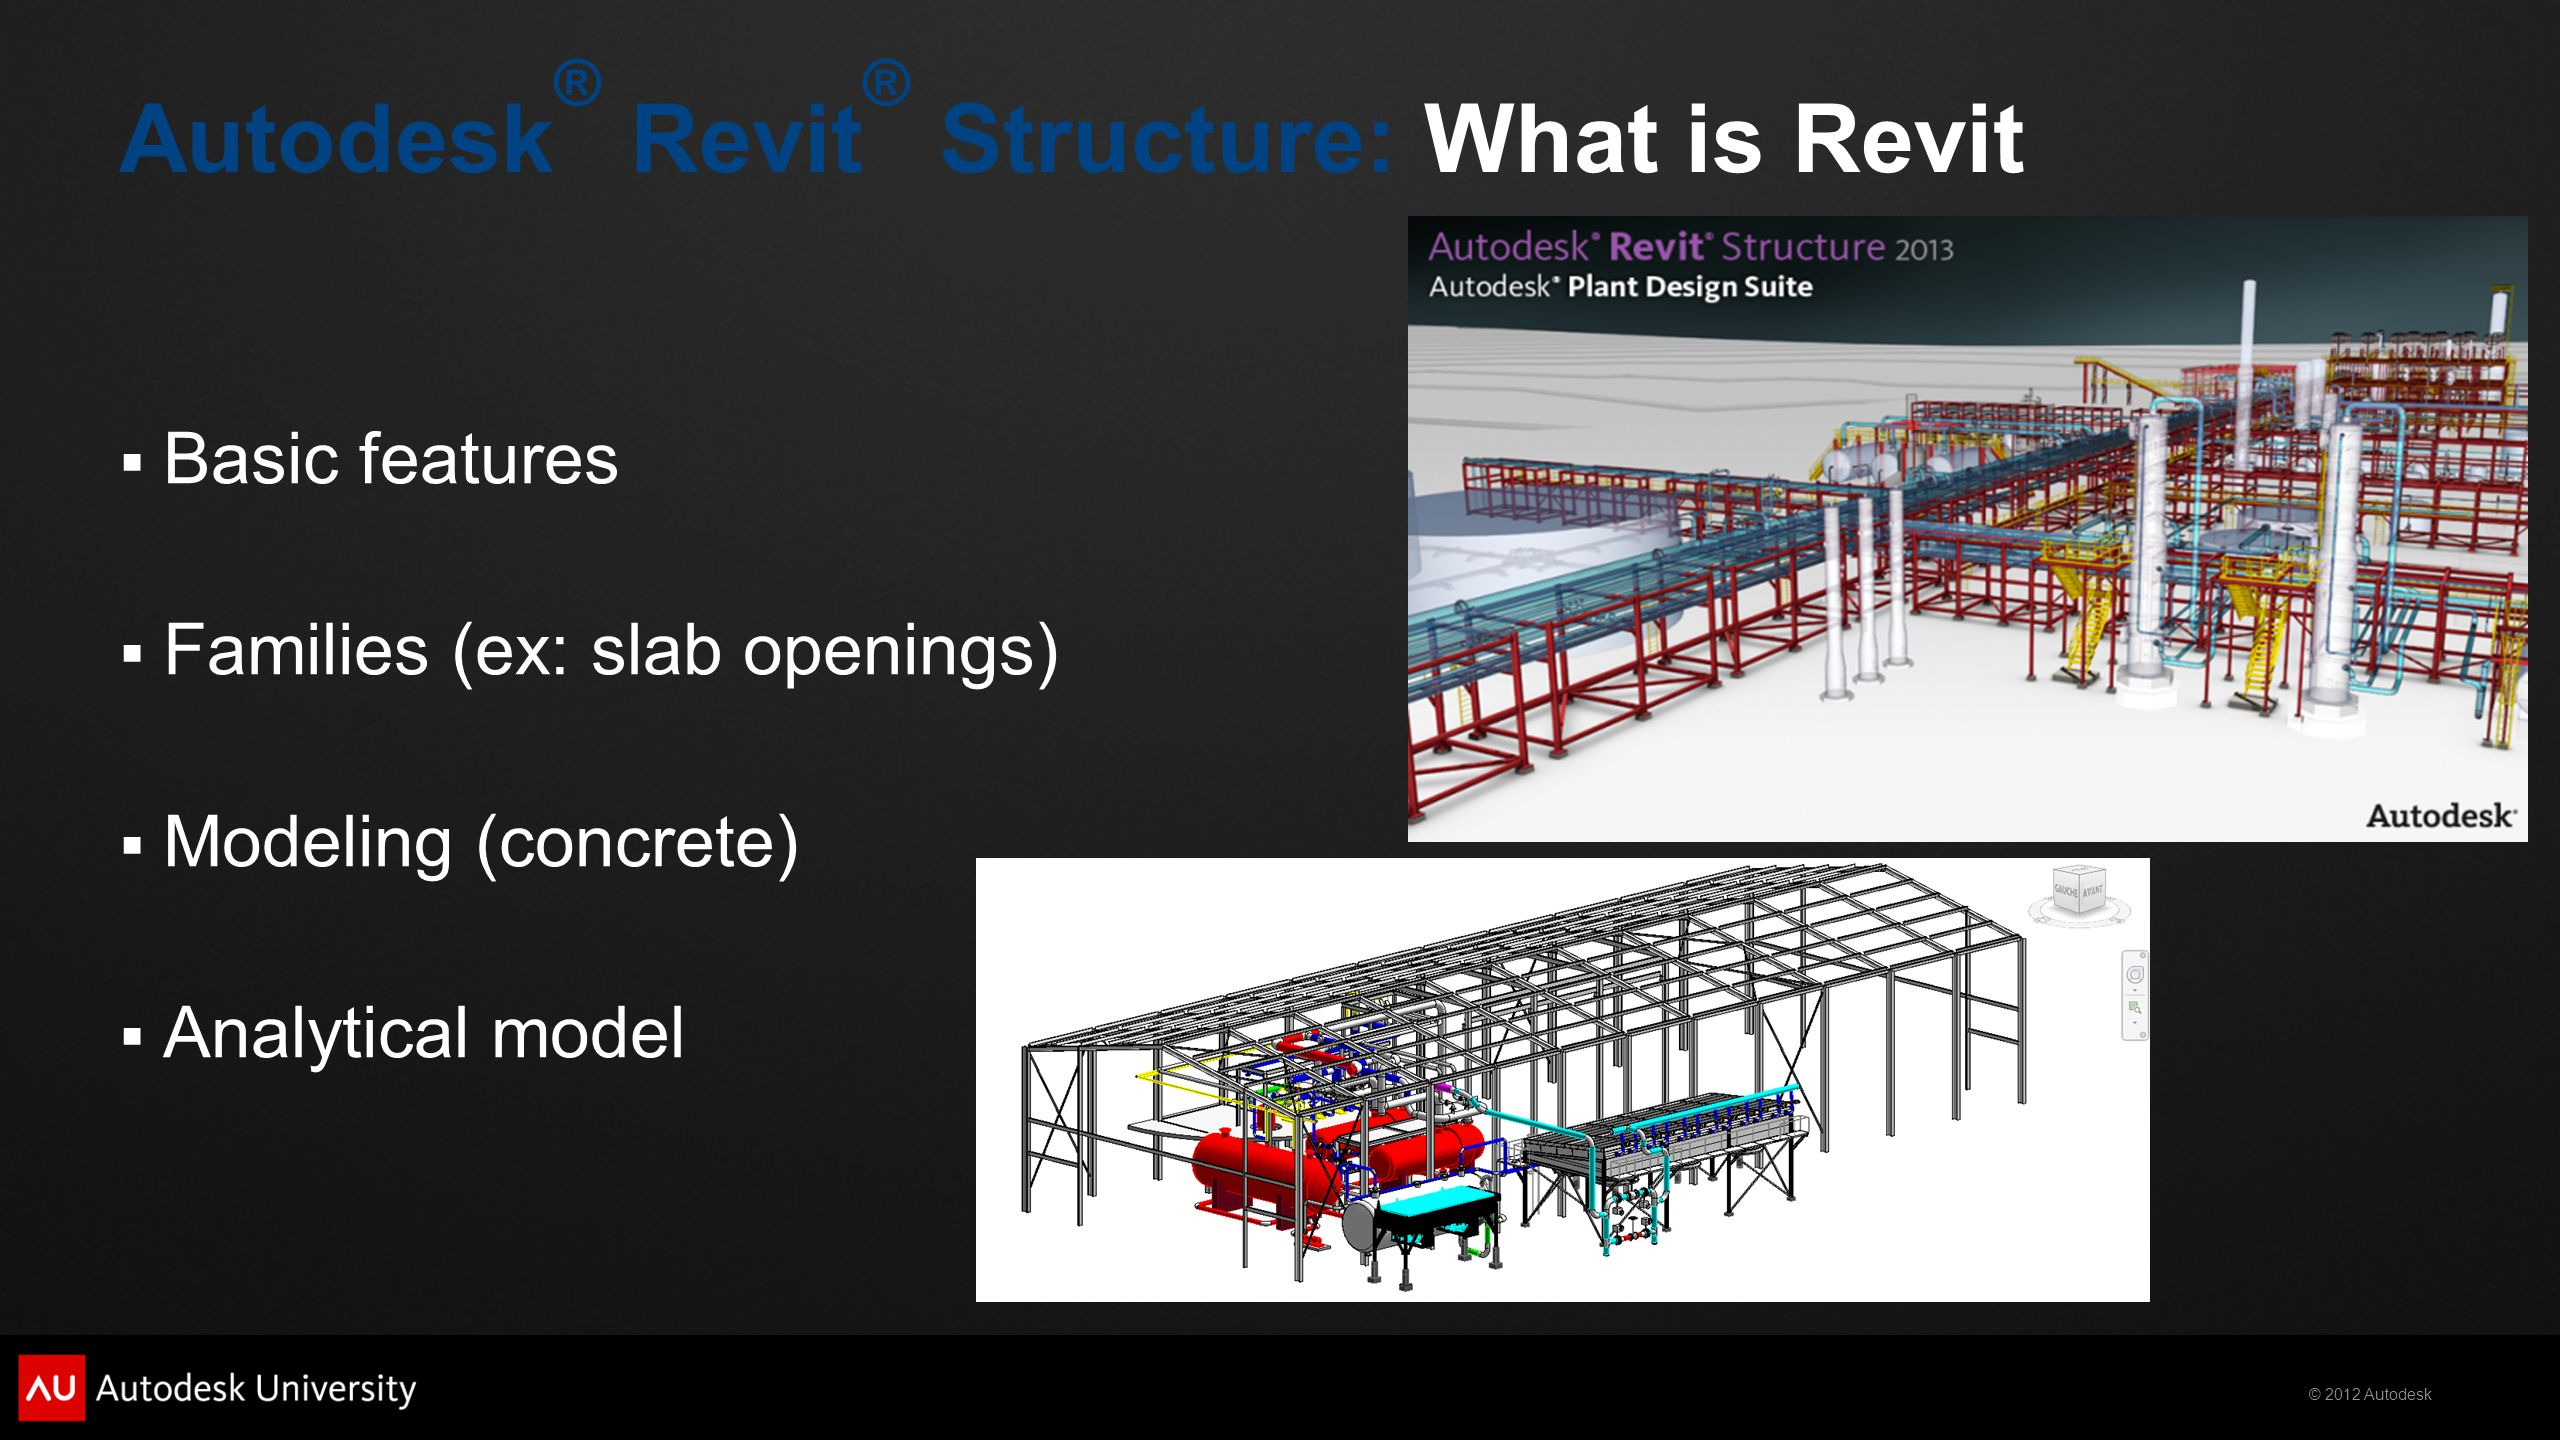 © 2012 Autodesk  Basic features  Families (ex: slab openings)  Modeling (concrete)  Analytical model Autodesk ® Revit ® Structure: What is Revit